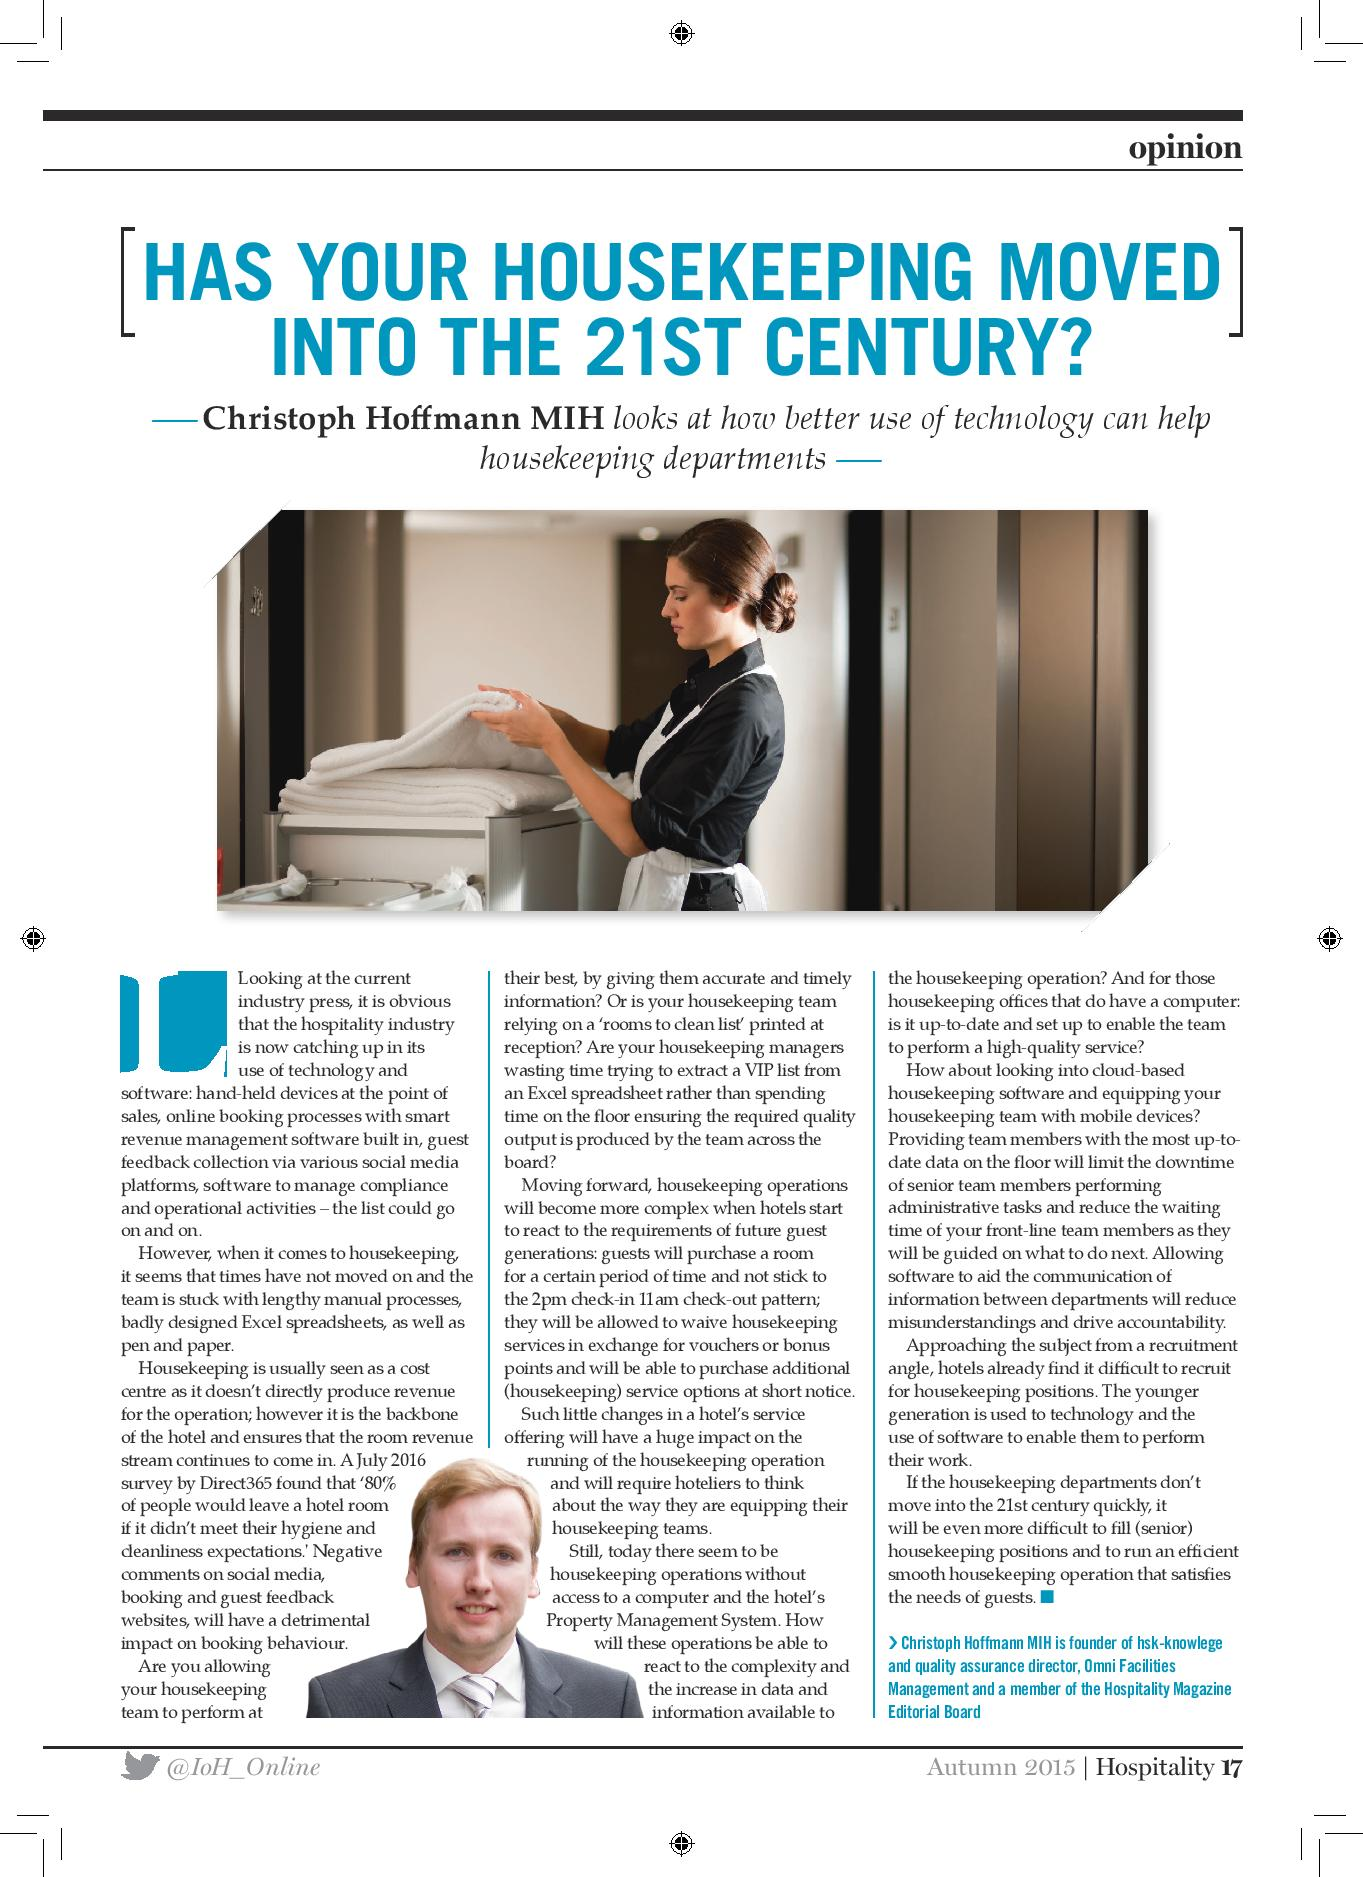 Has your housekeeping moved into the 21st century?